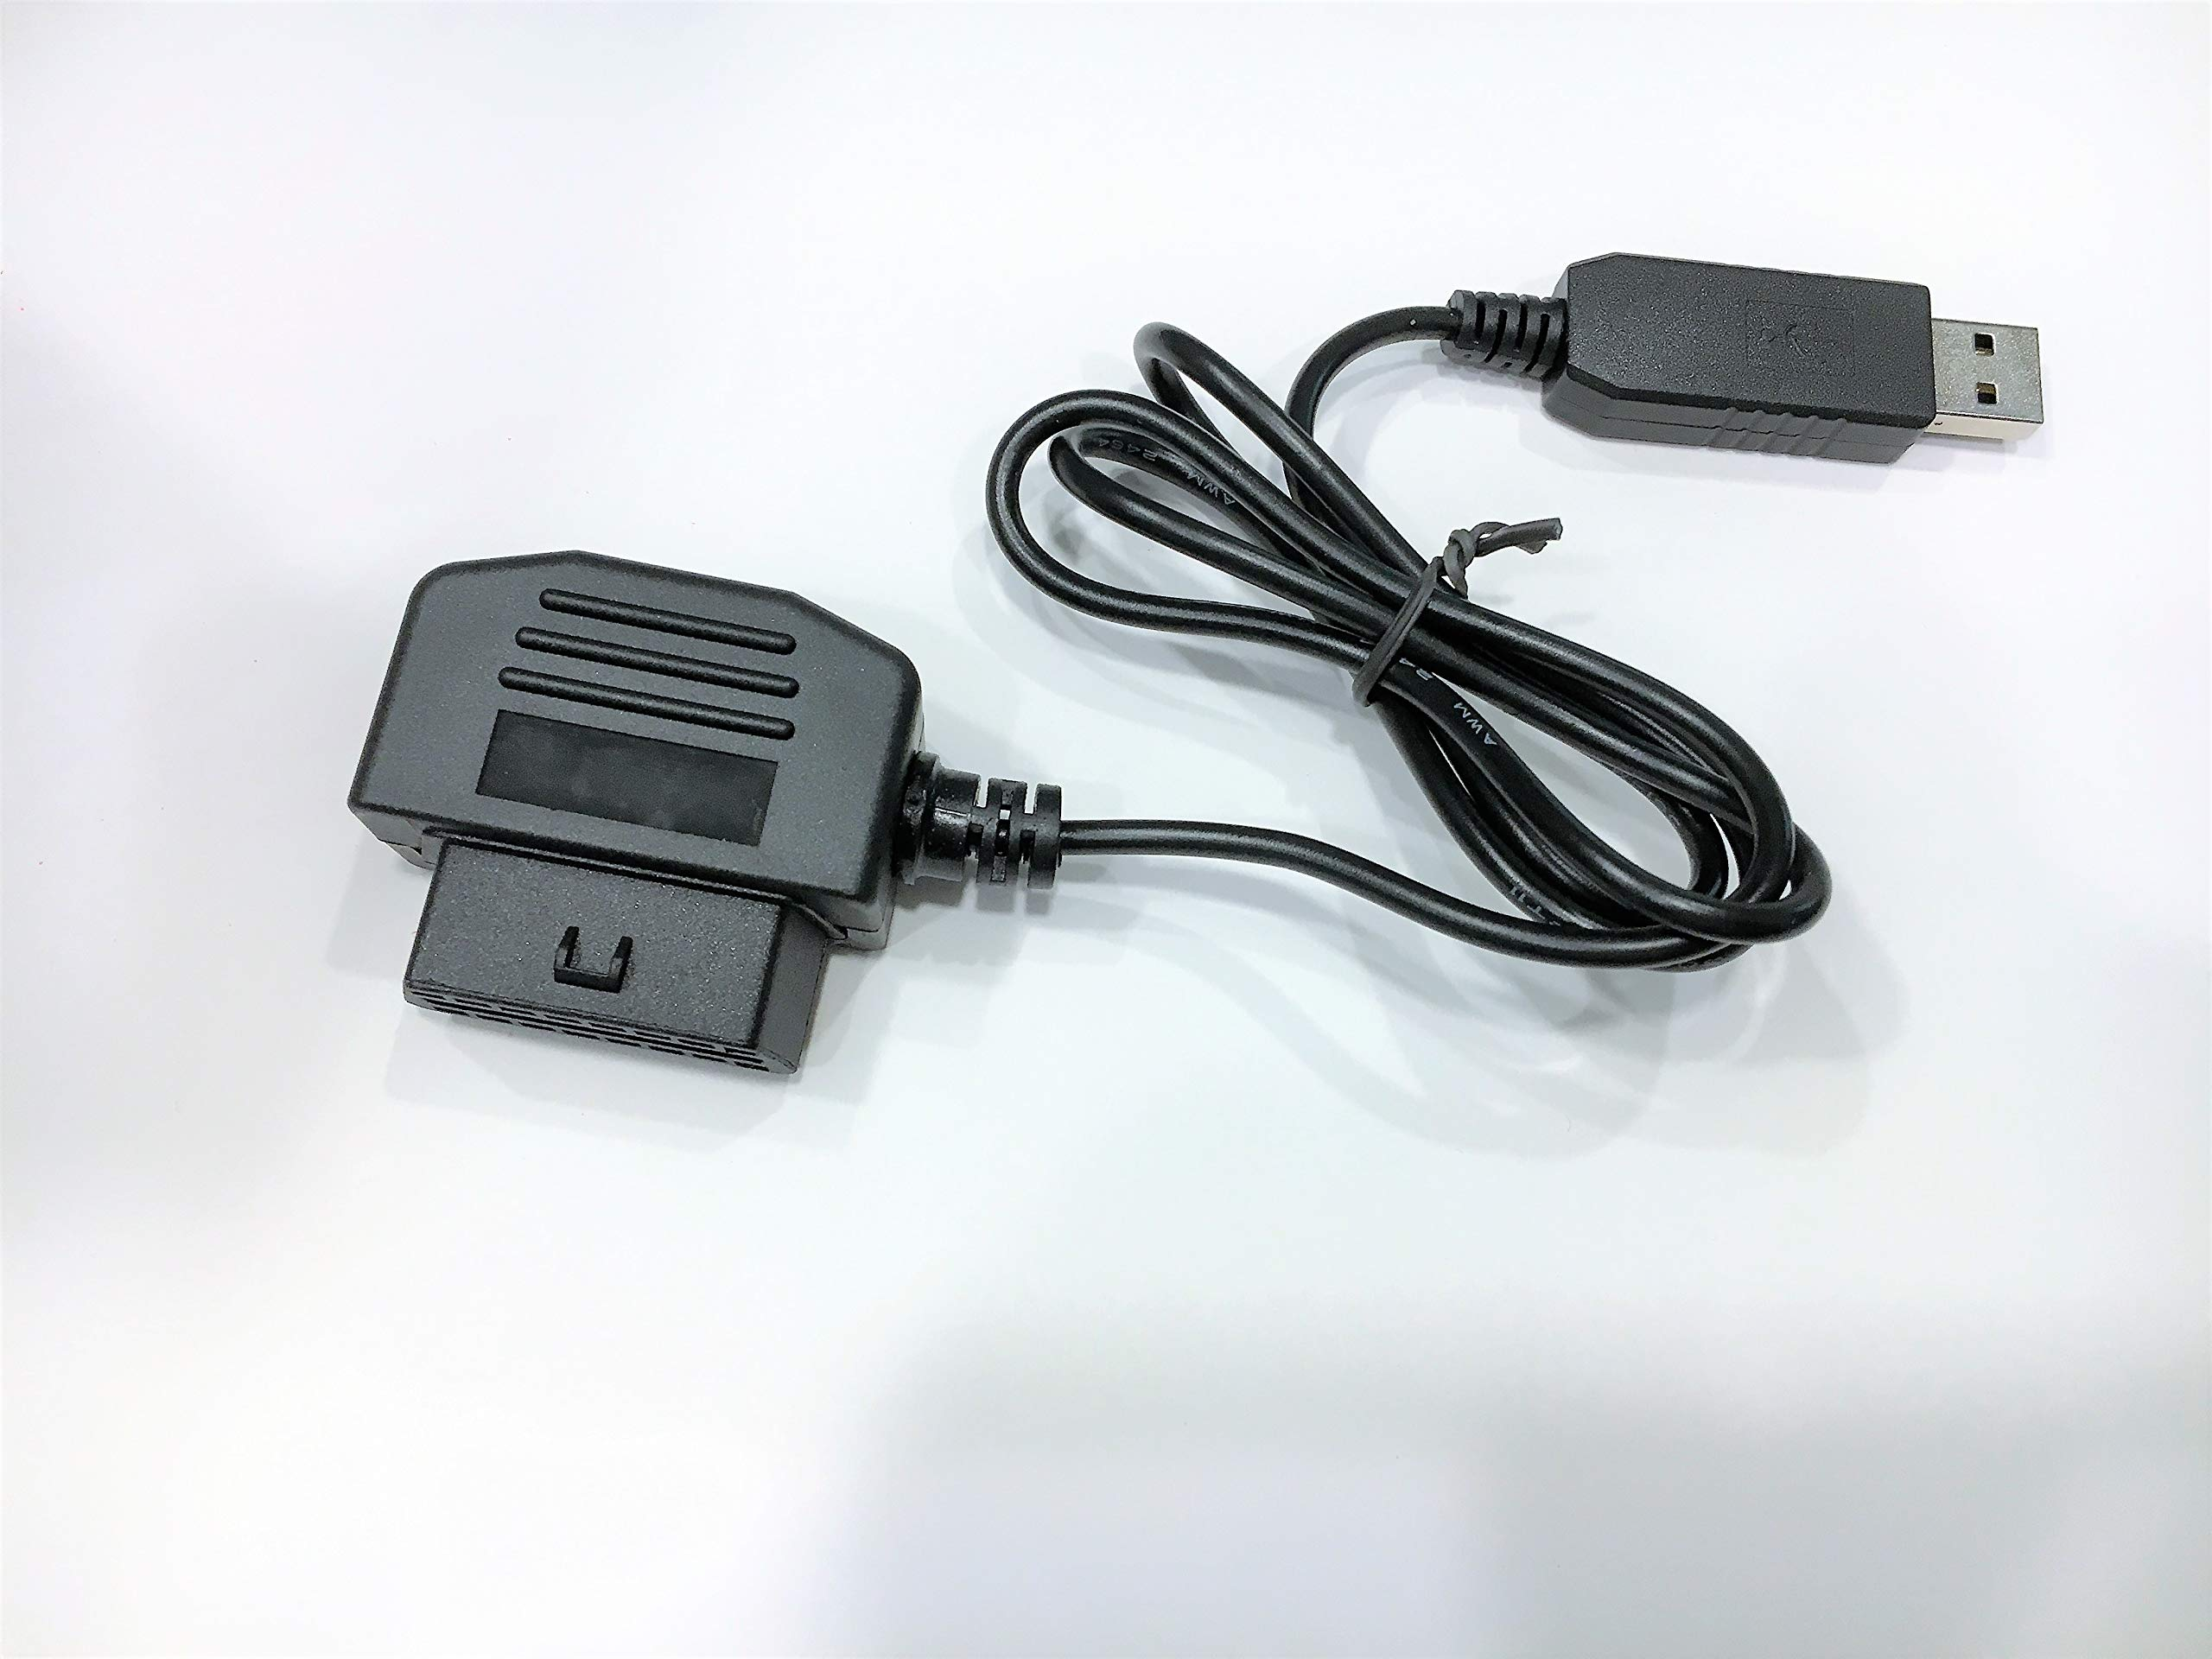 USB Adapter for AT&T ZTE Mobley OBD2 LTE Wi-Fi Hotspot by Vegajf